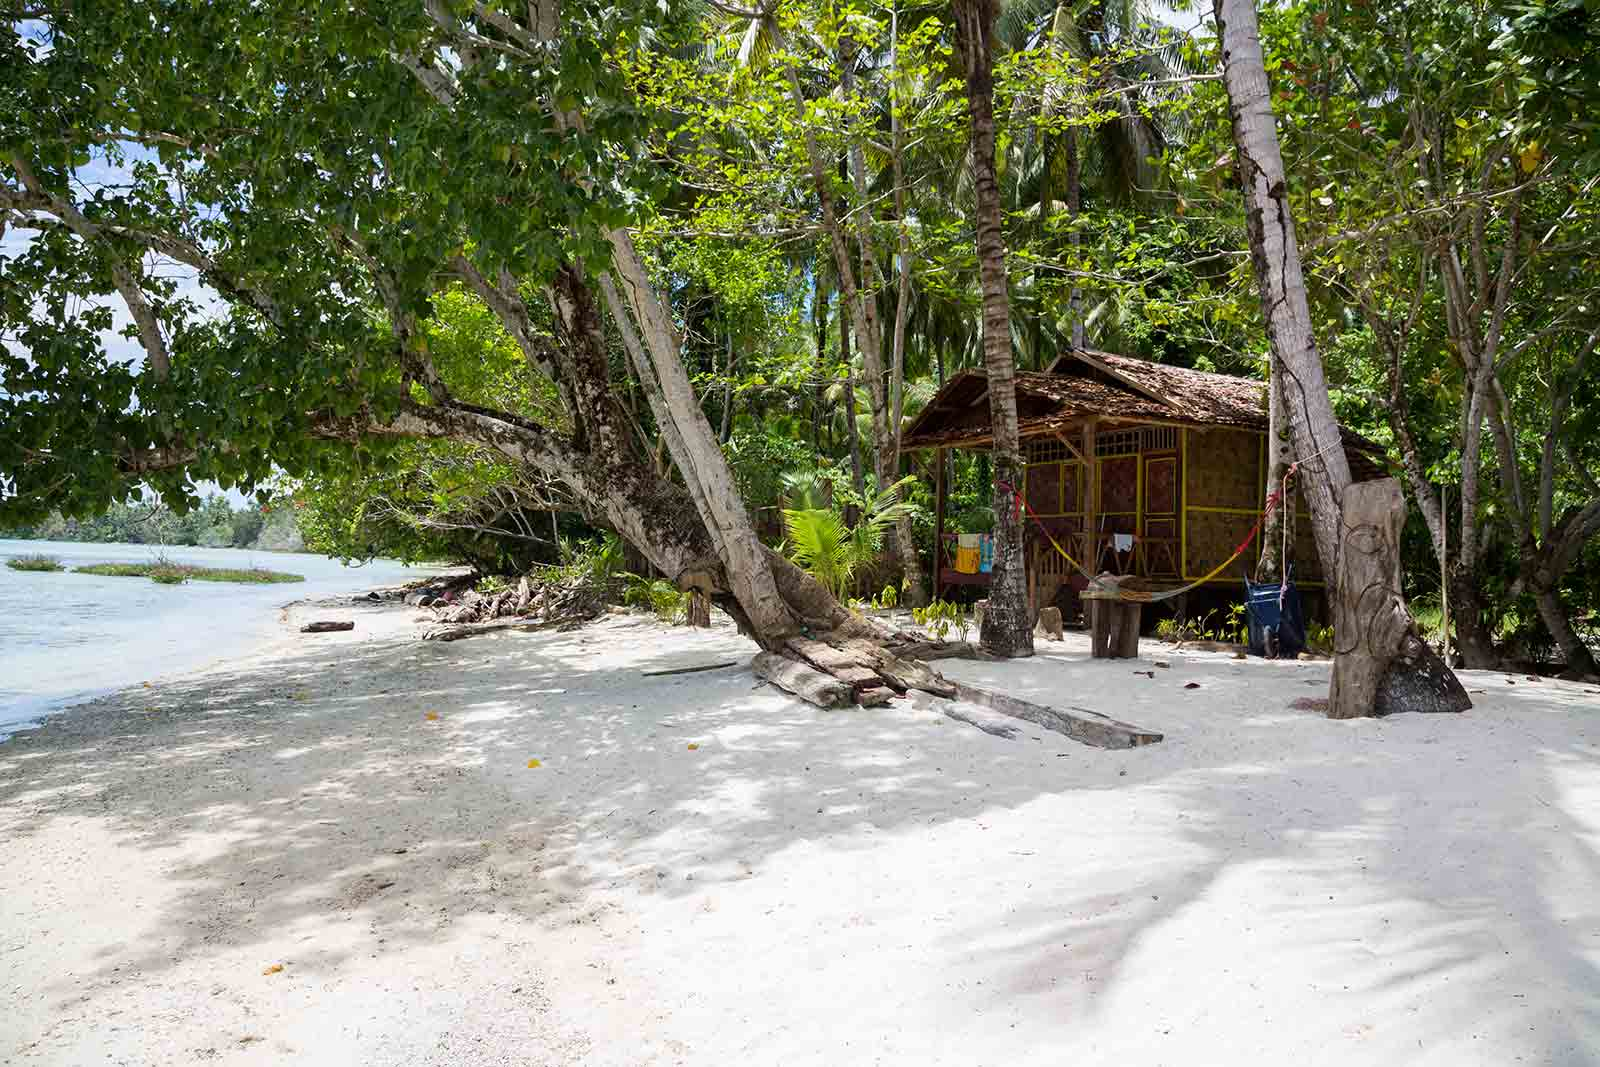 Maluku Islands: Puntih Lessi Indah Homestay on Saparua is the best place to stay at for some serious beach action.